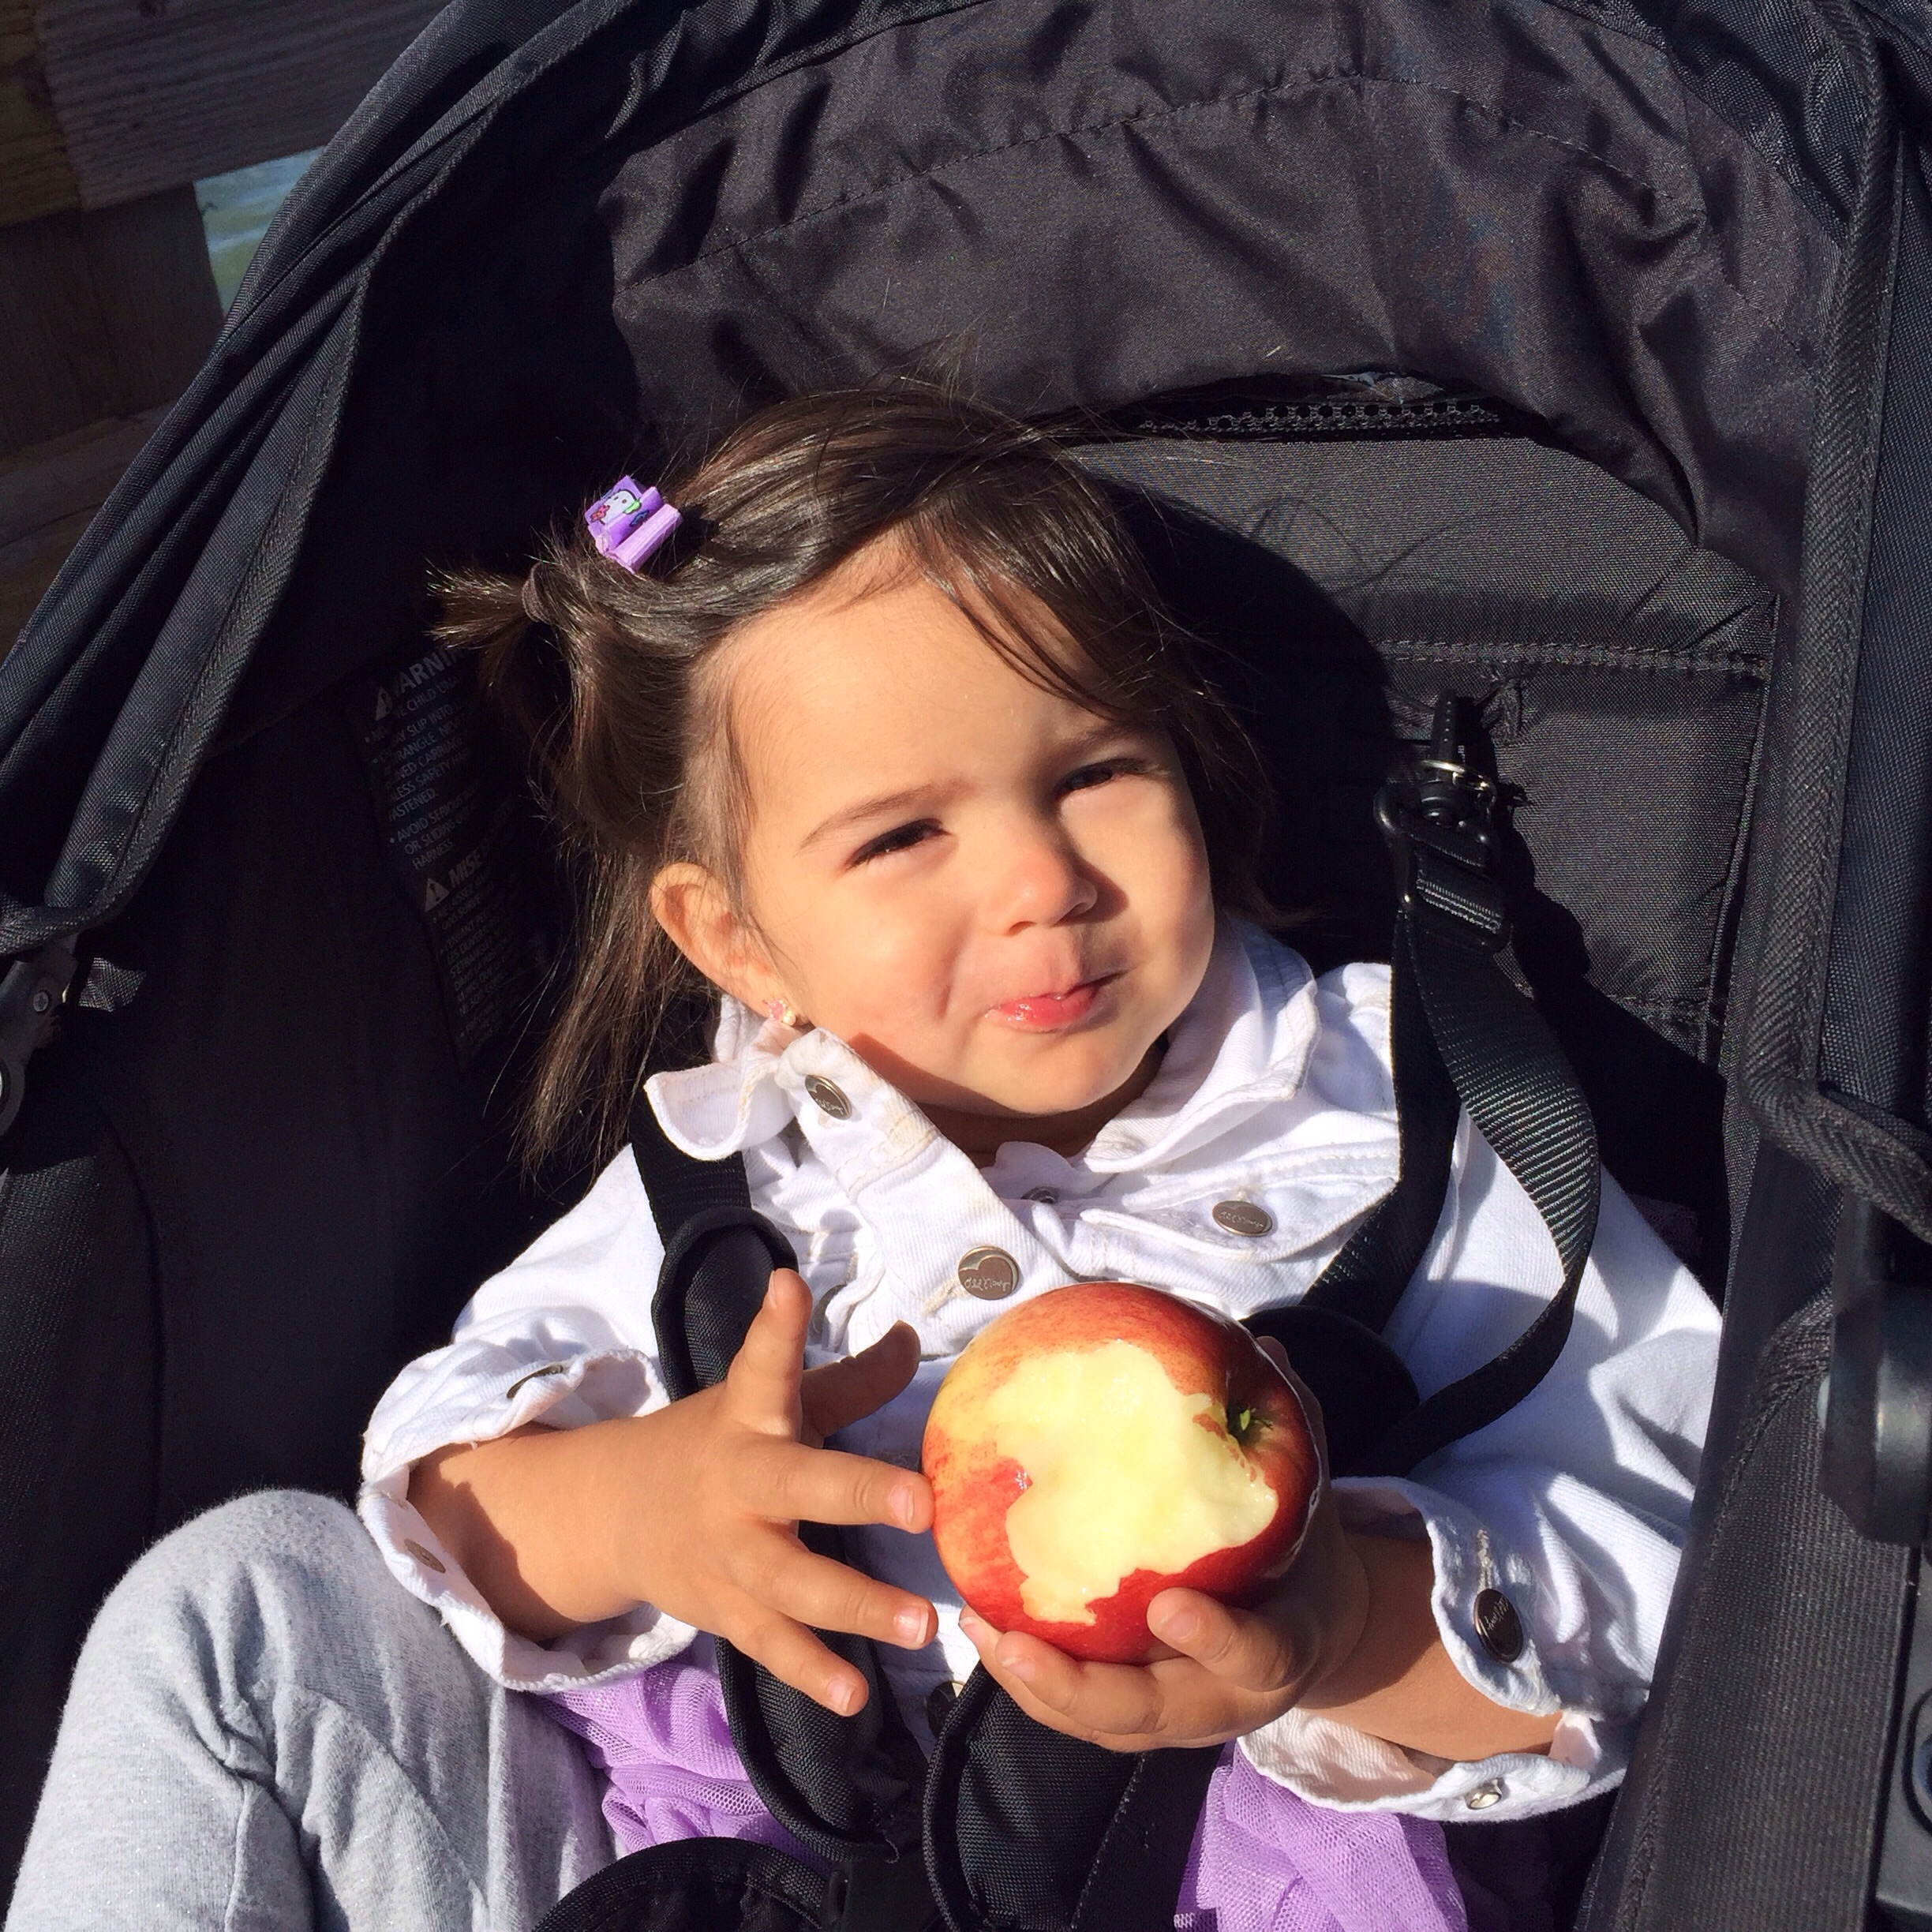 She loves apples, eats one pretty much everyday!